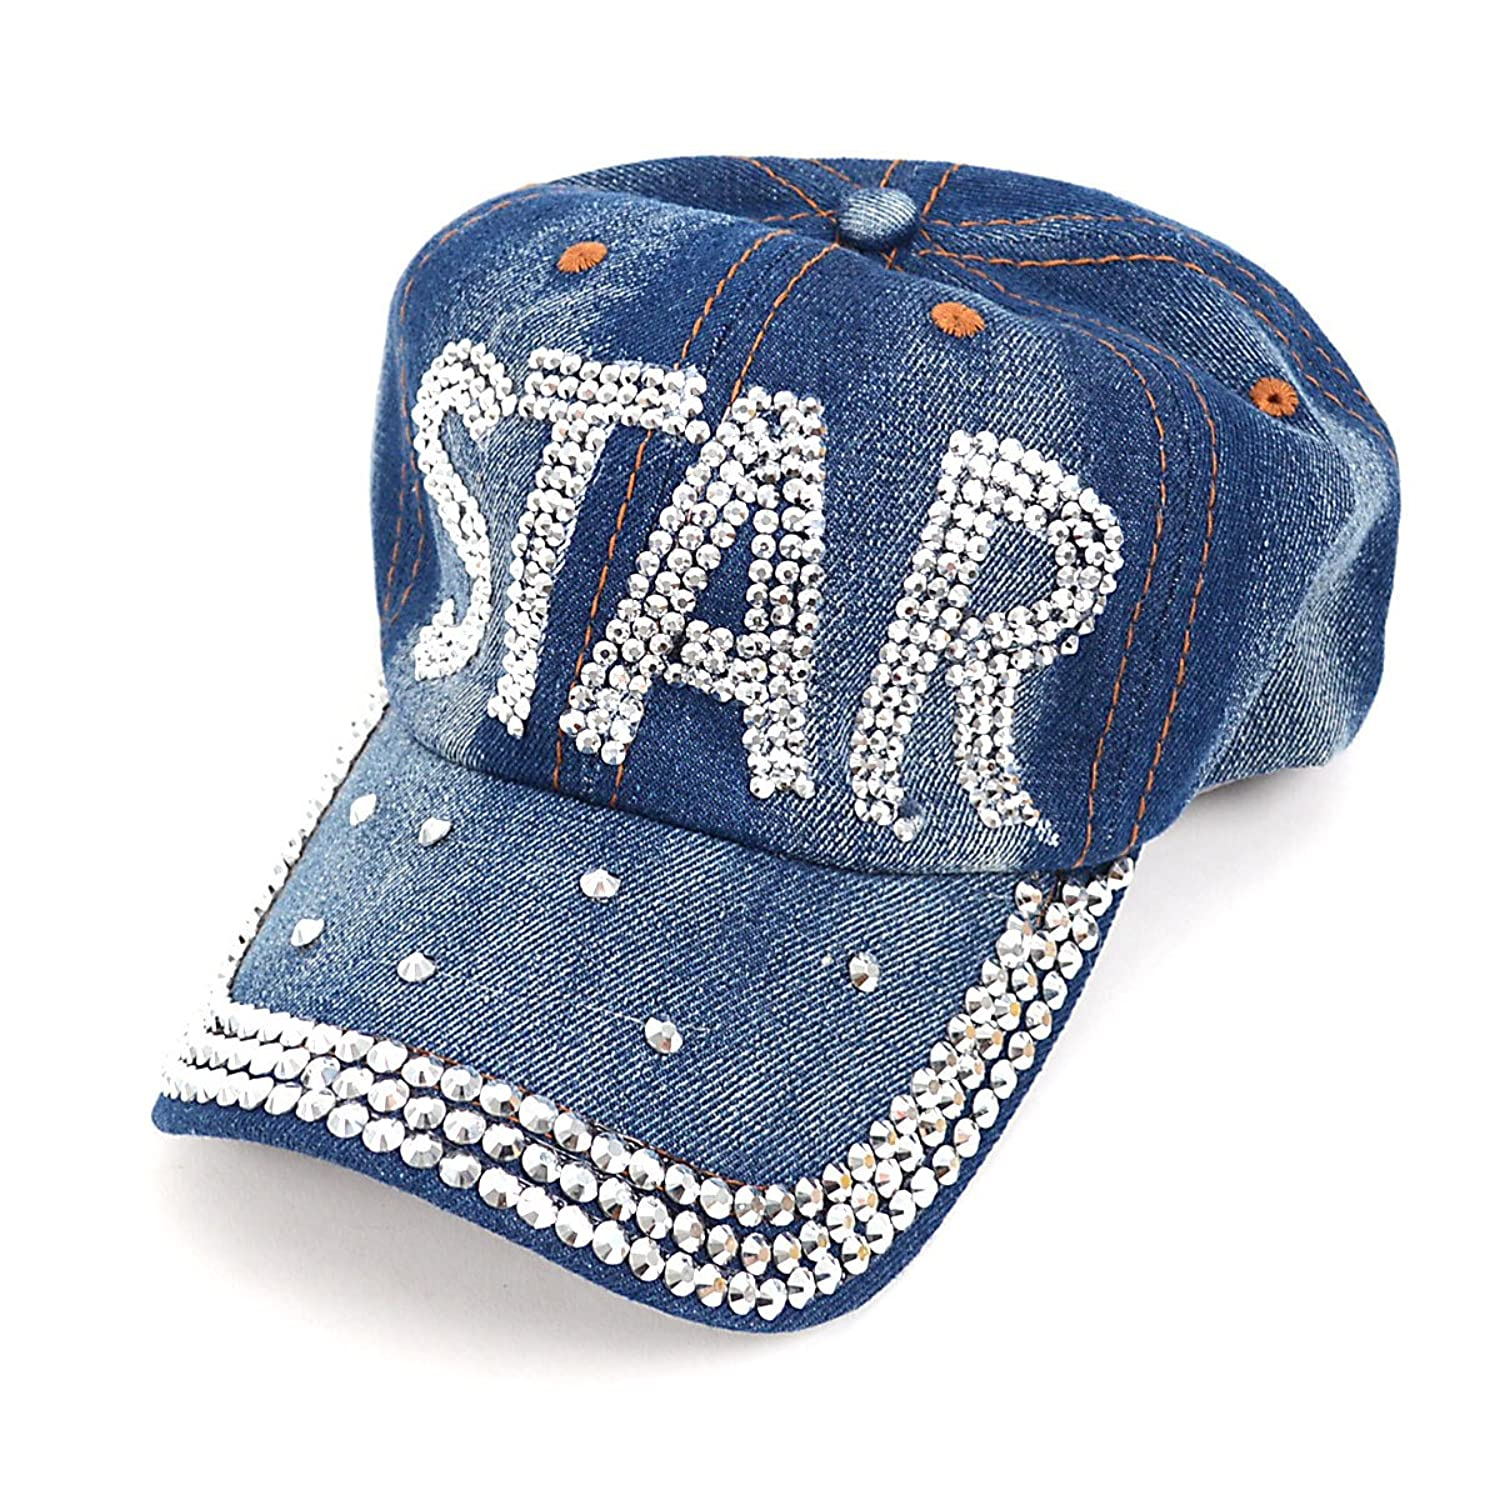 Bling Embellished Star Denim Baseball Cap